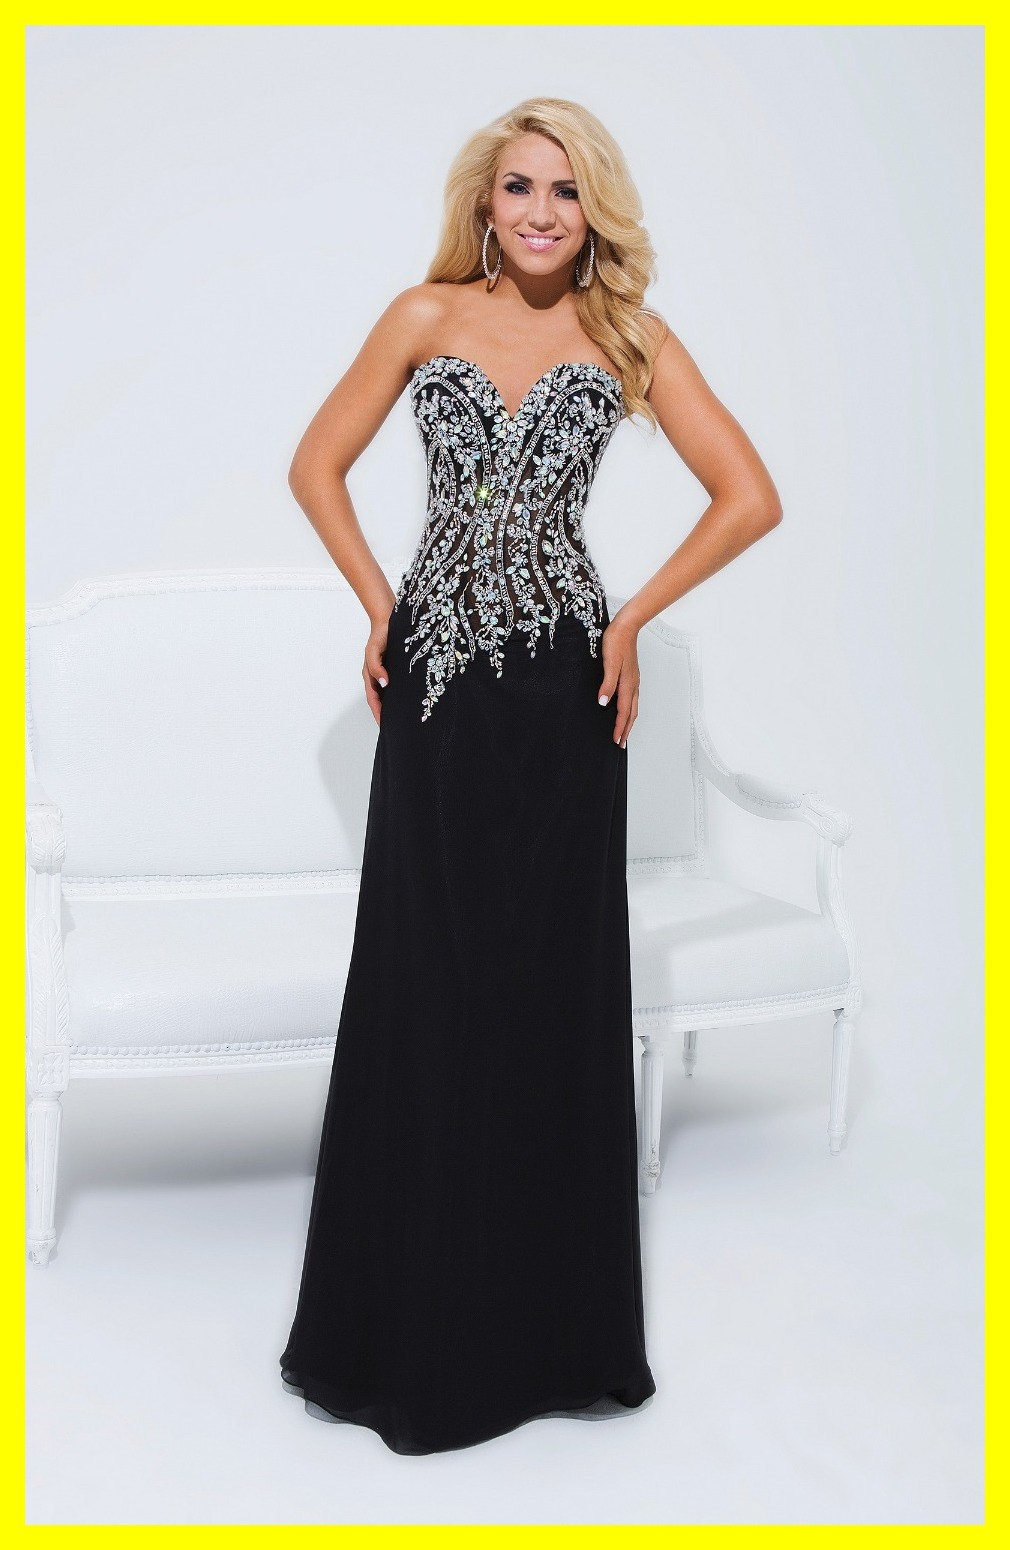 Old Prom Dresses 18